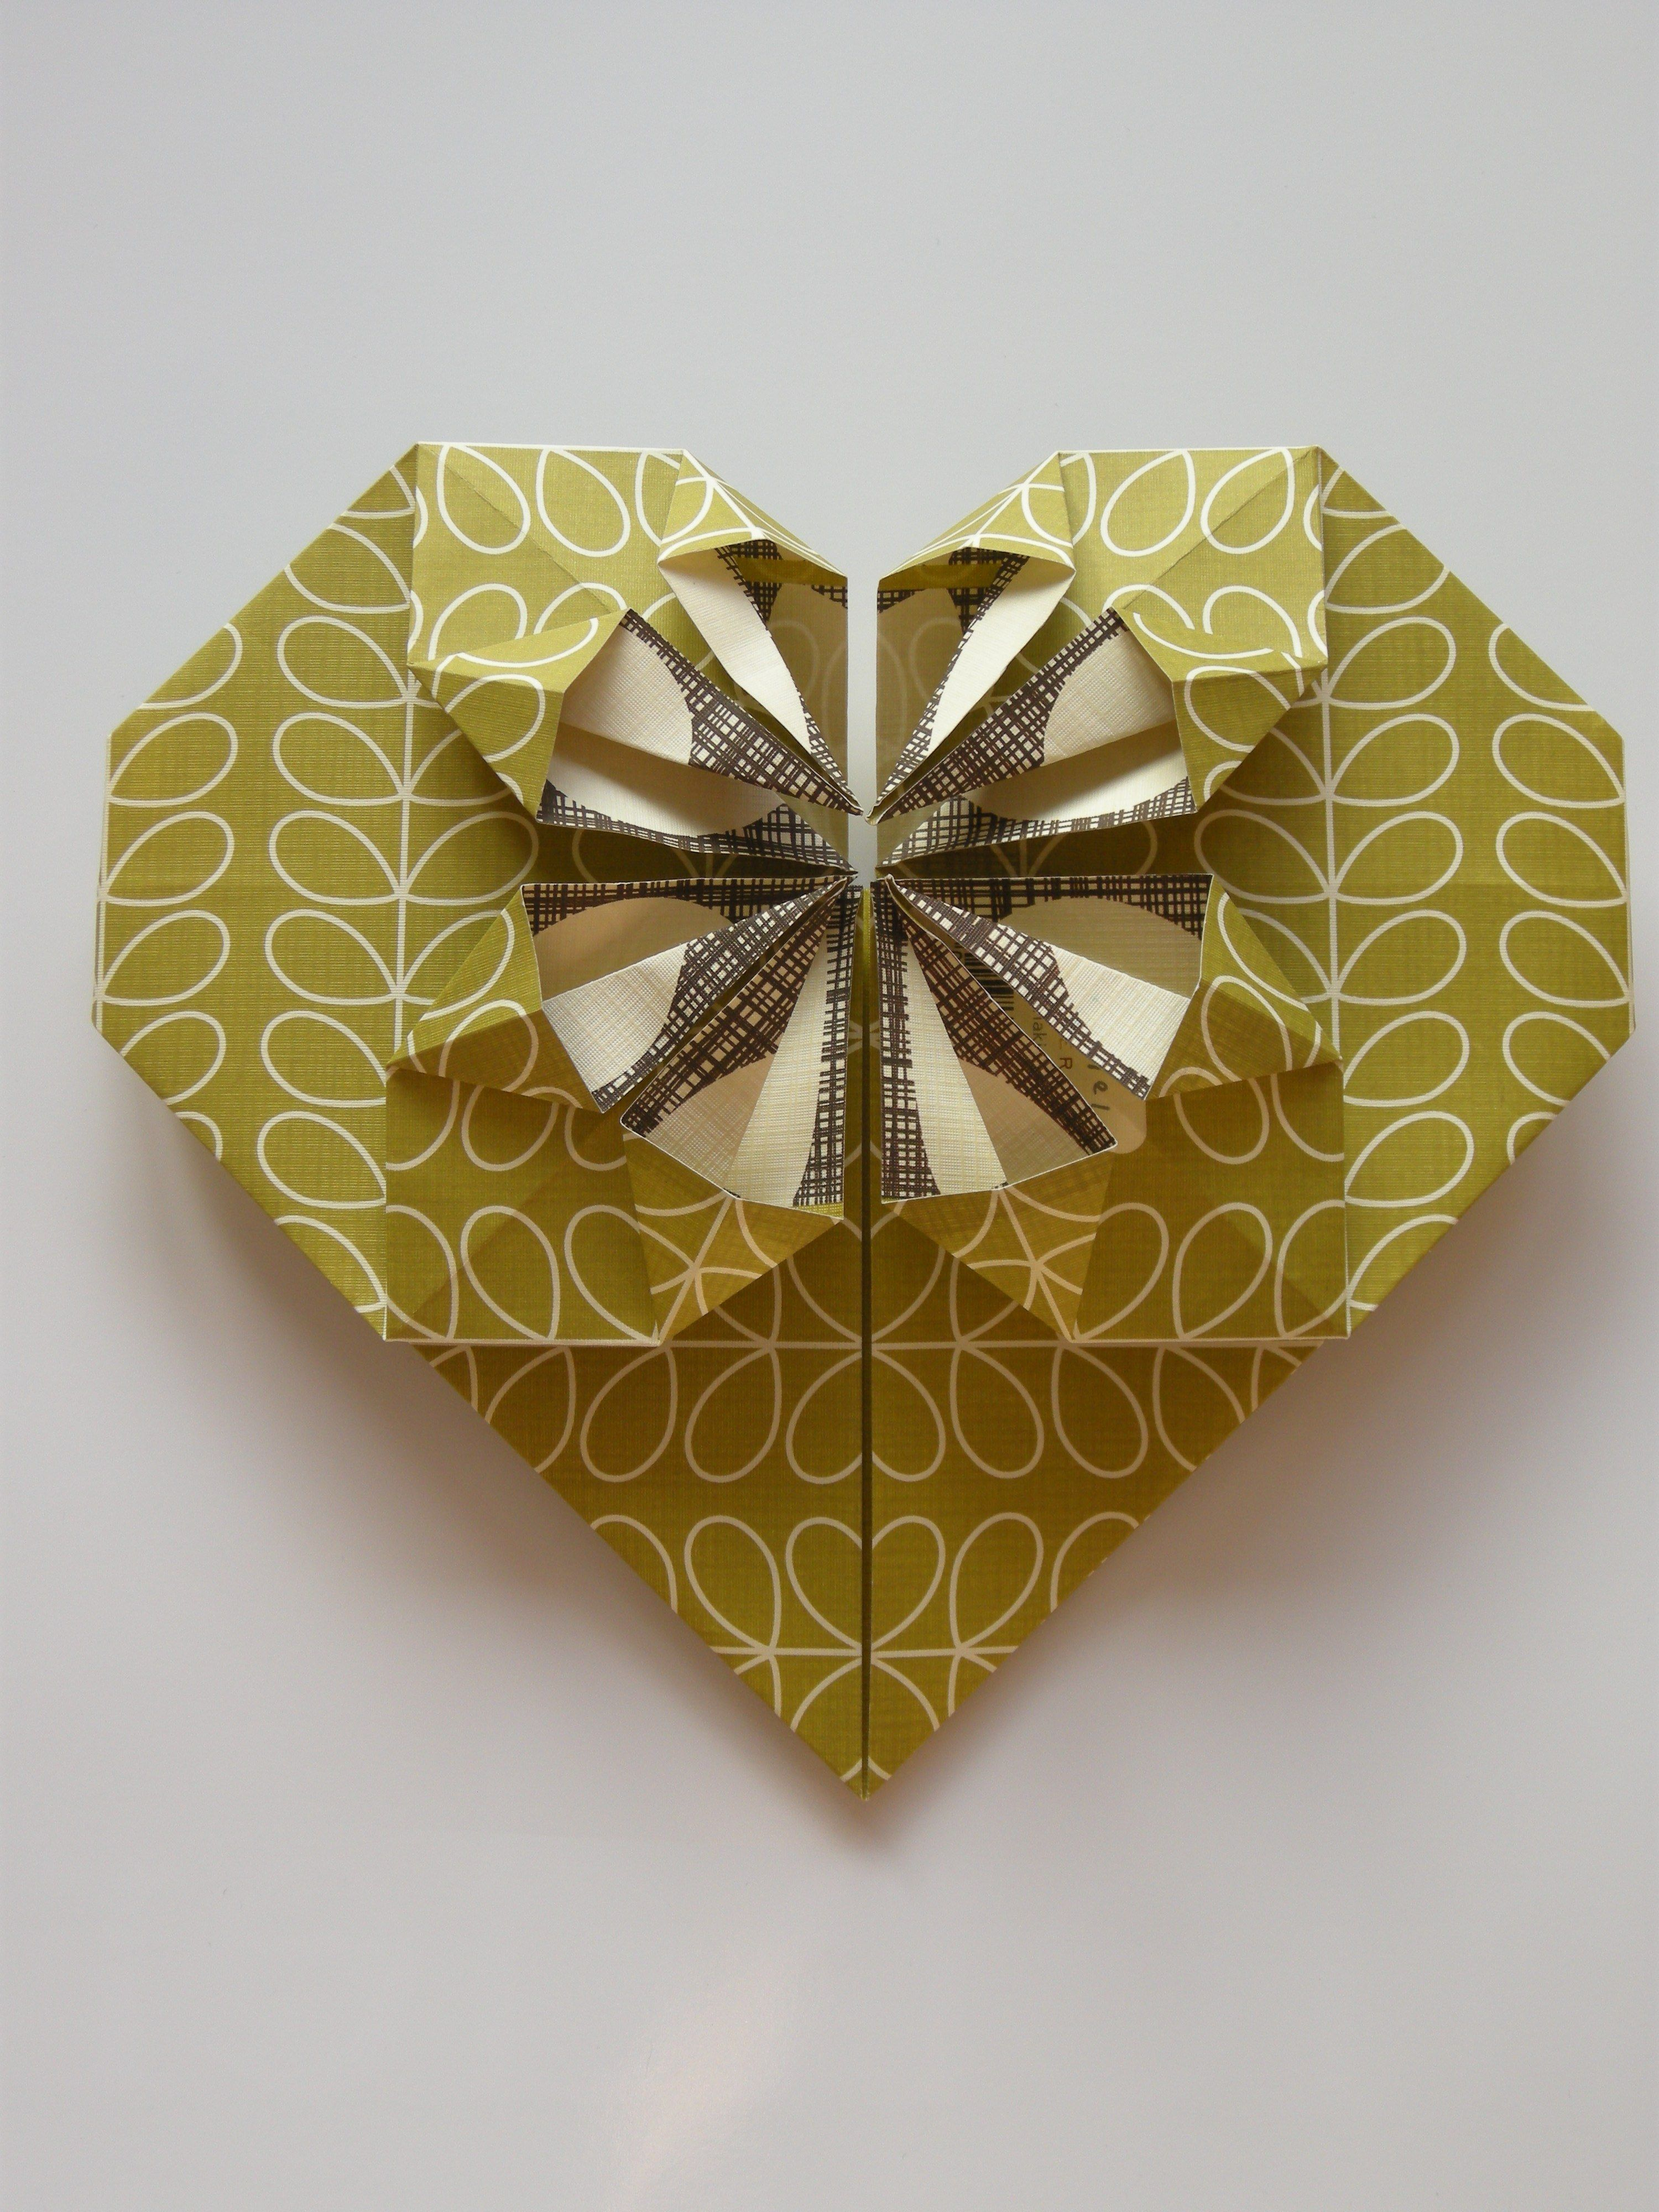 Origami heart with pattern by Orla Kiely